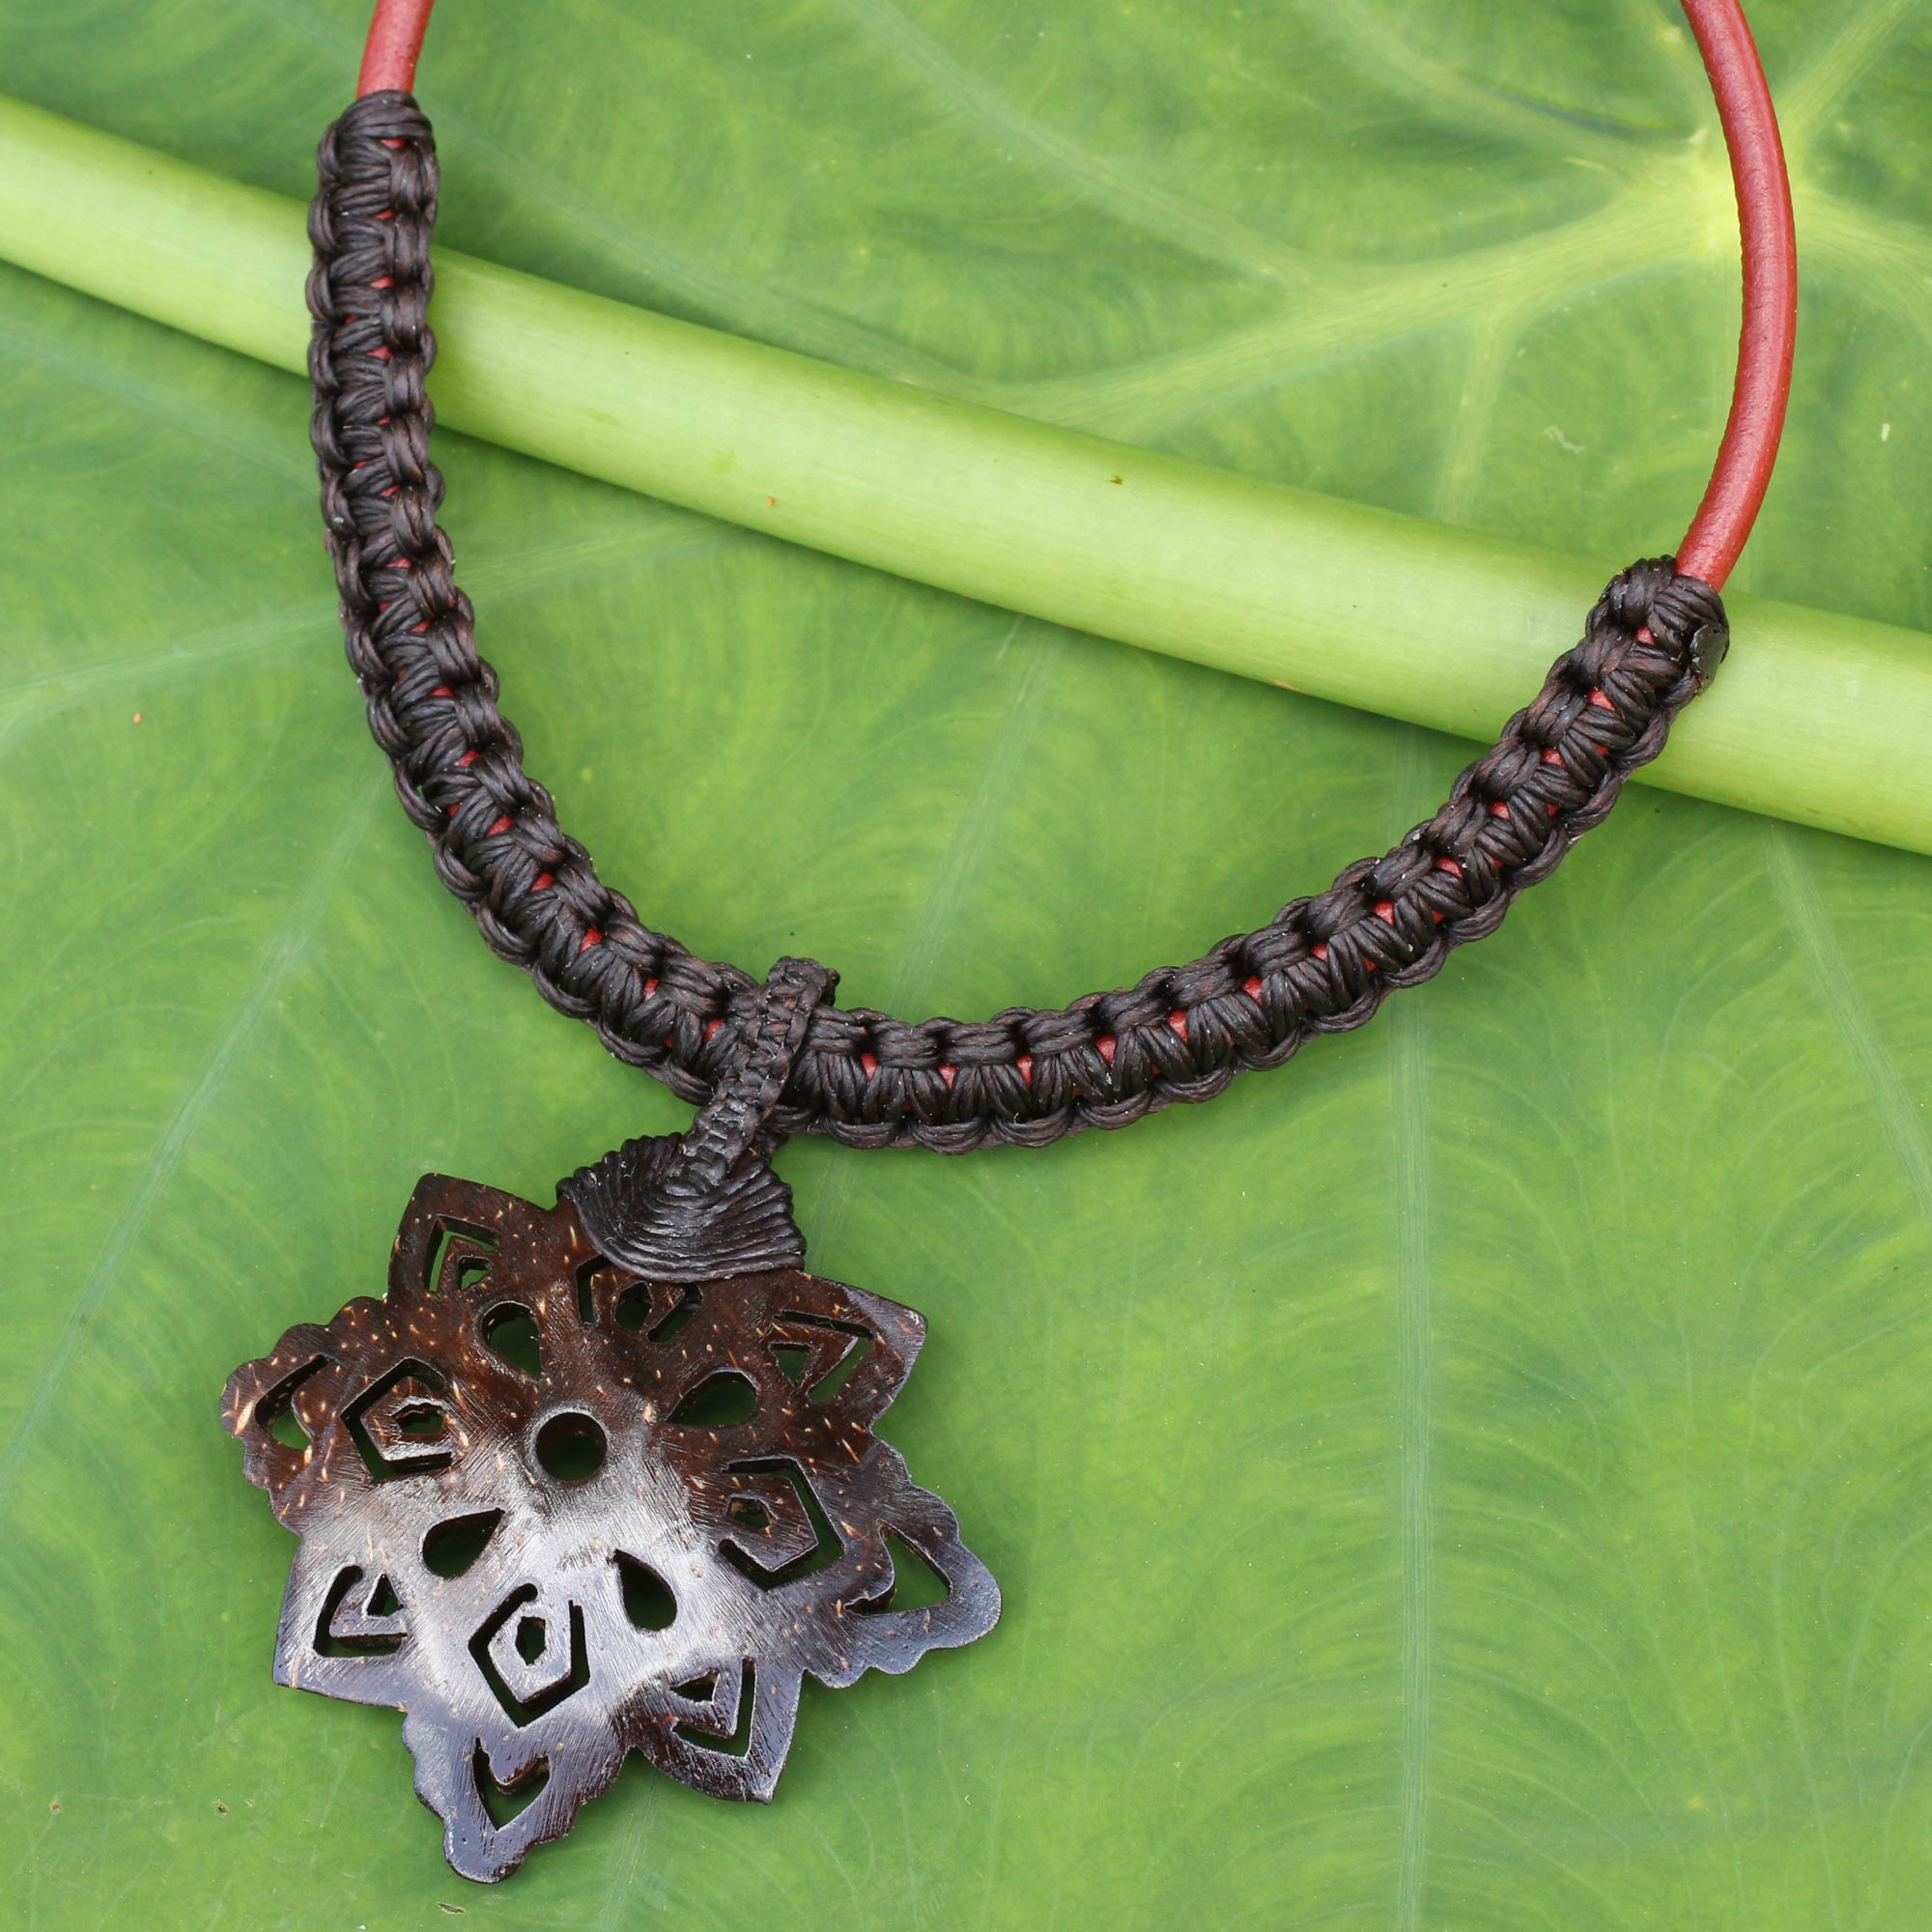 Handmade coconut shell pendant necklace with macrame thai proud handmade coconut shell pendant necklace with macrame thai proud novica aloadofball Choice Image